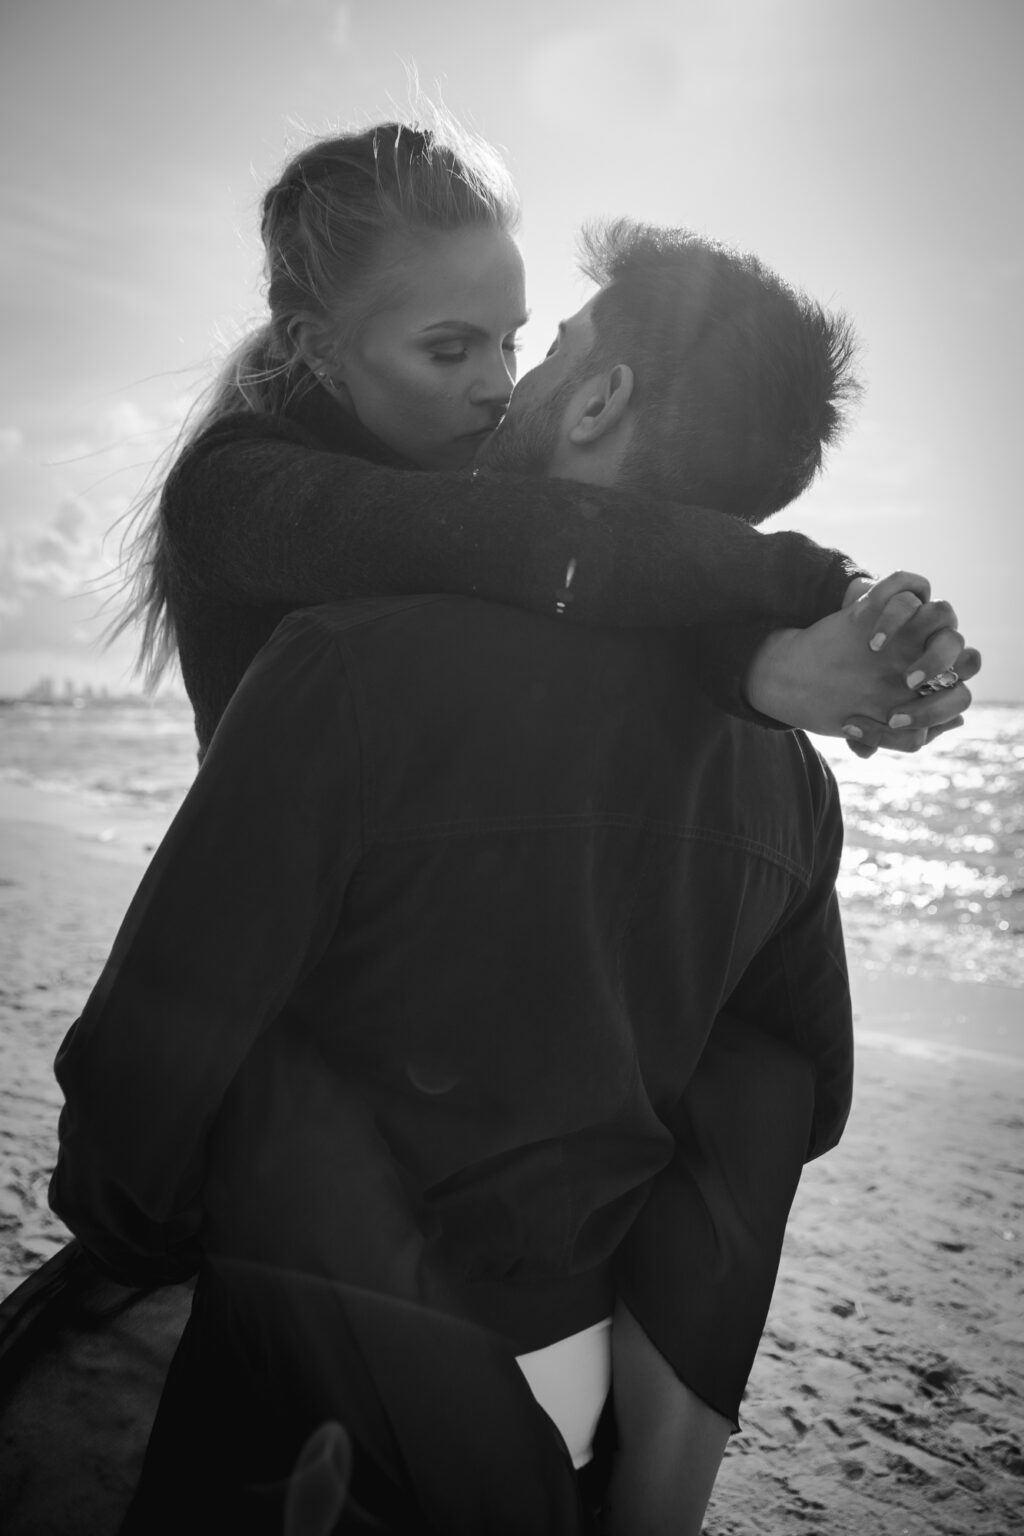 maffiti - Black and white couple photo at beach mustvalge paarifoto rannas